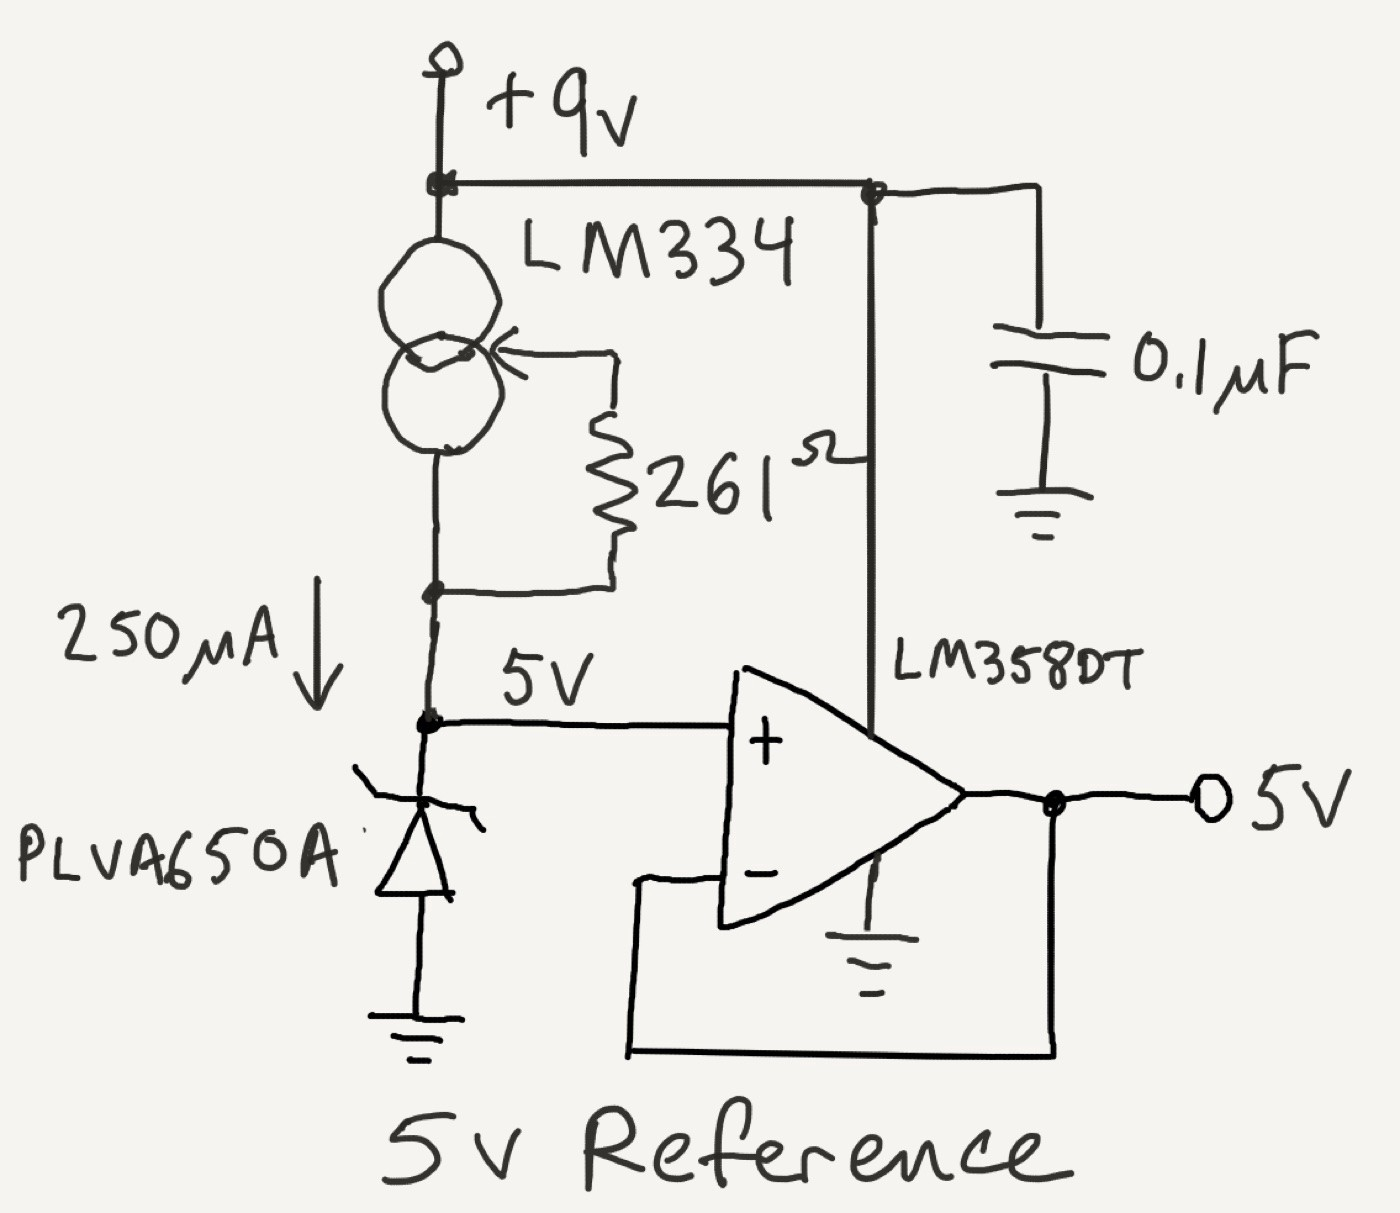 Hello Diodes Tempo Automation Medium Reverse Bias Oscillator Circuit A Zener Diode Takes Advantage Of The Limited Breakdown Voltage 5v Is Non Standard So You Should Probably Use Different